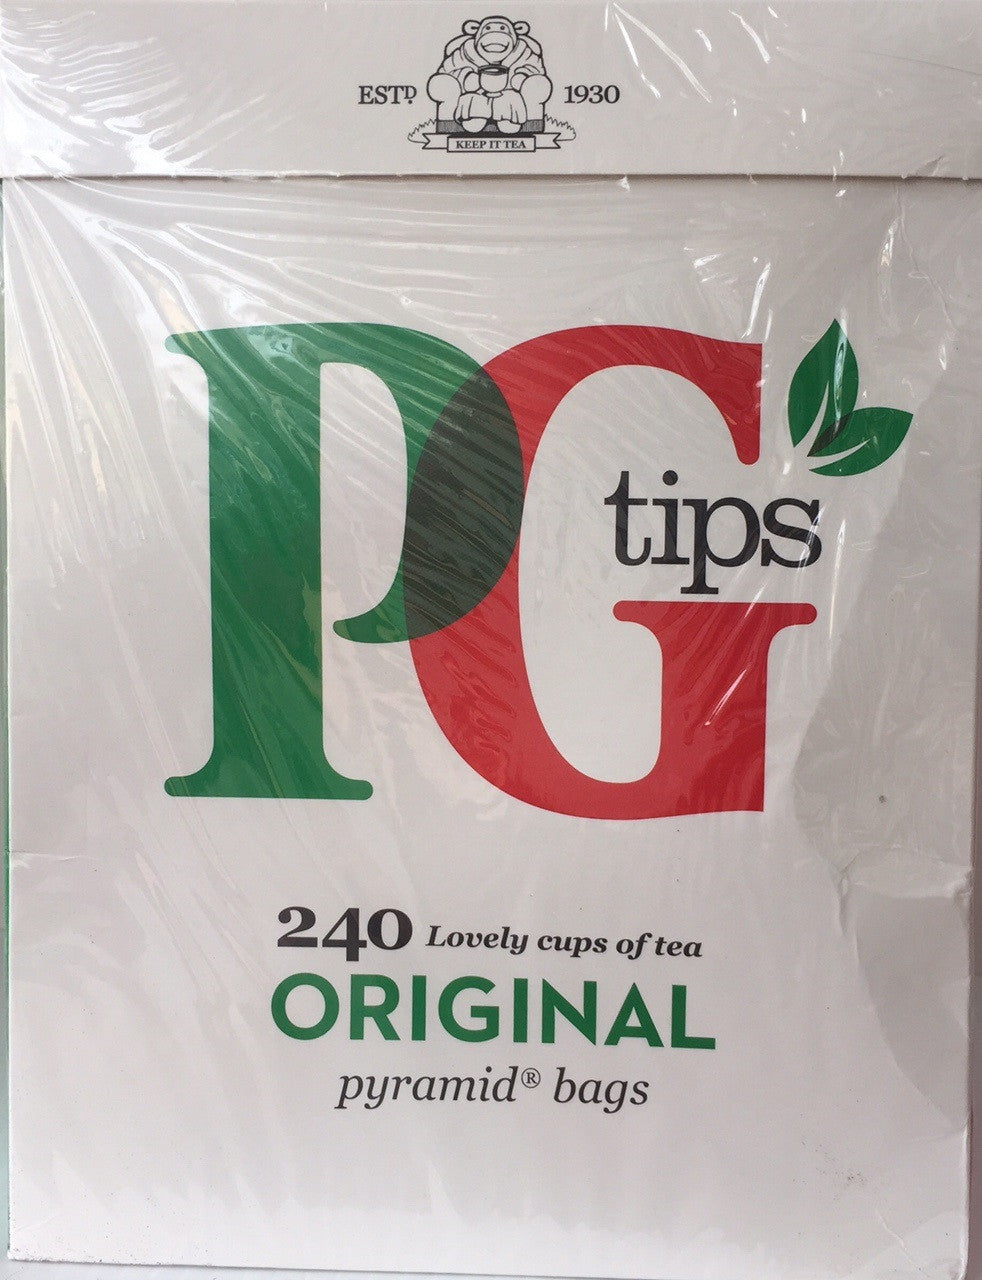 PG Tips 240 Teabags